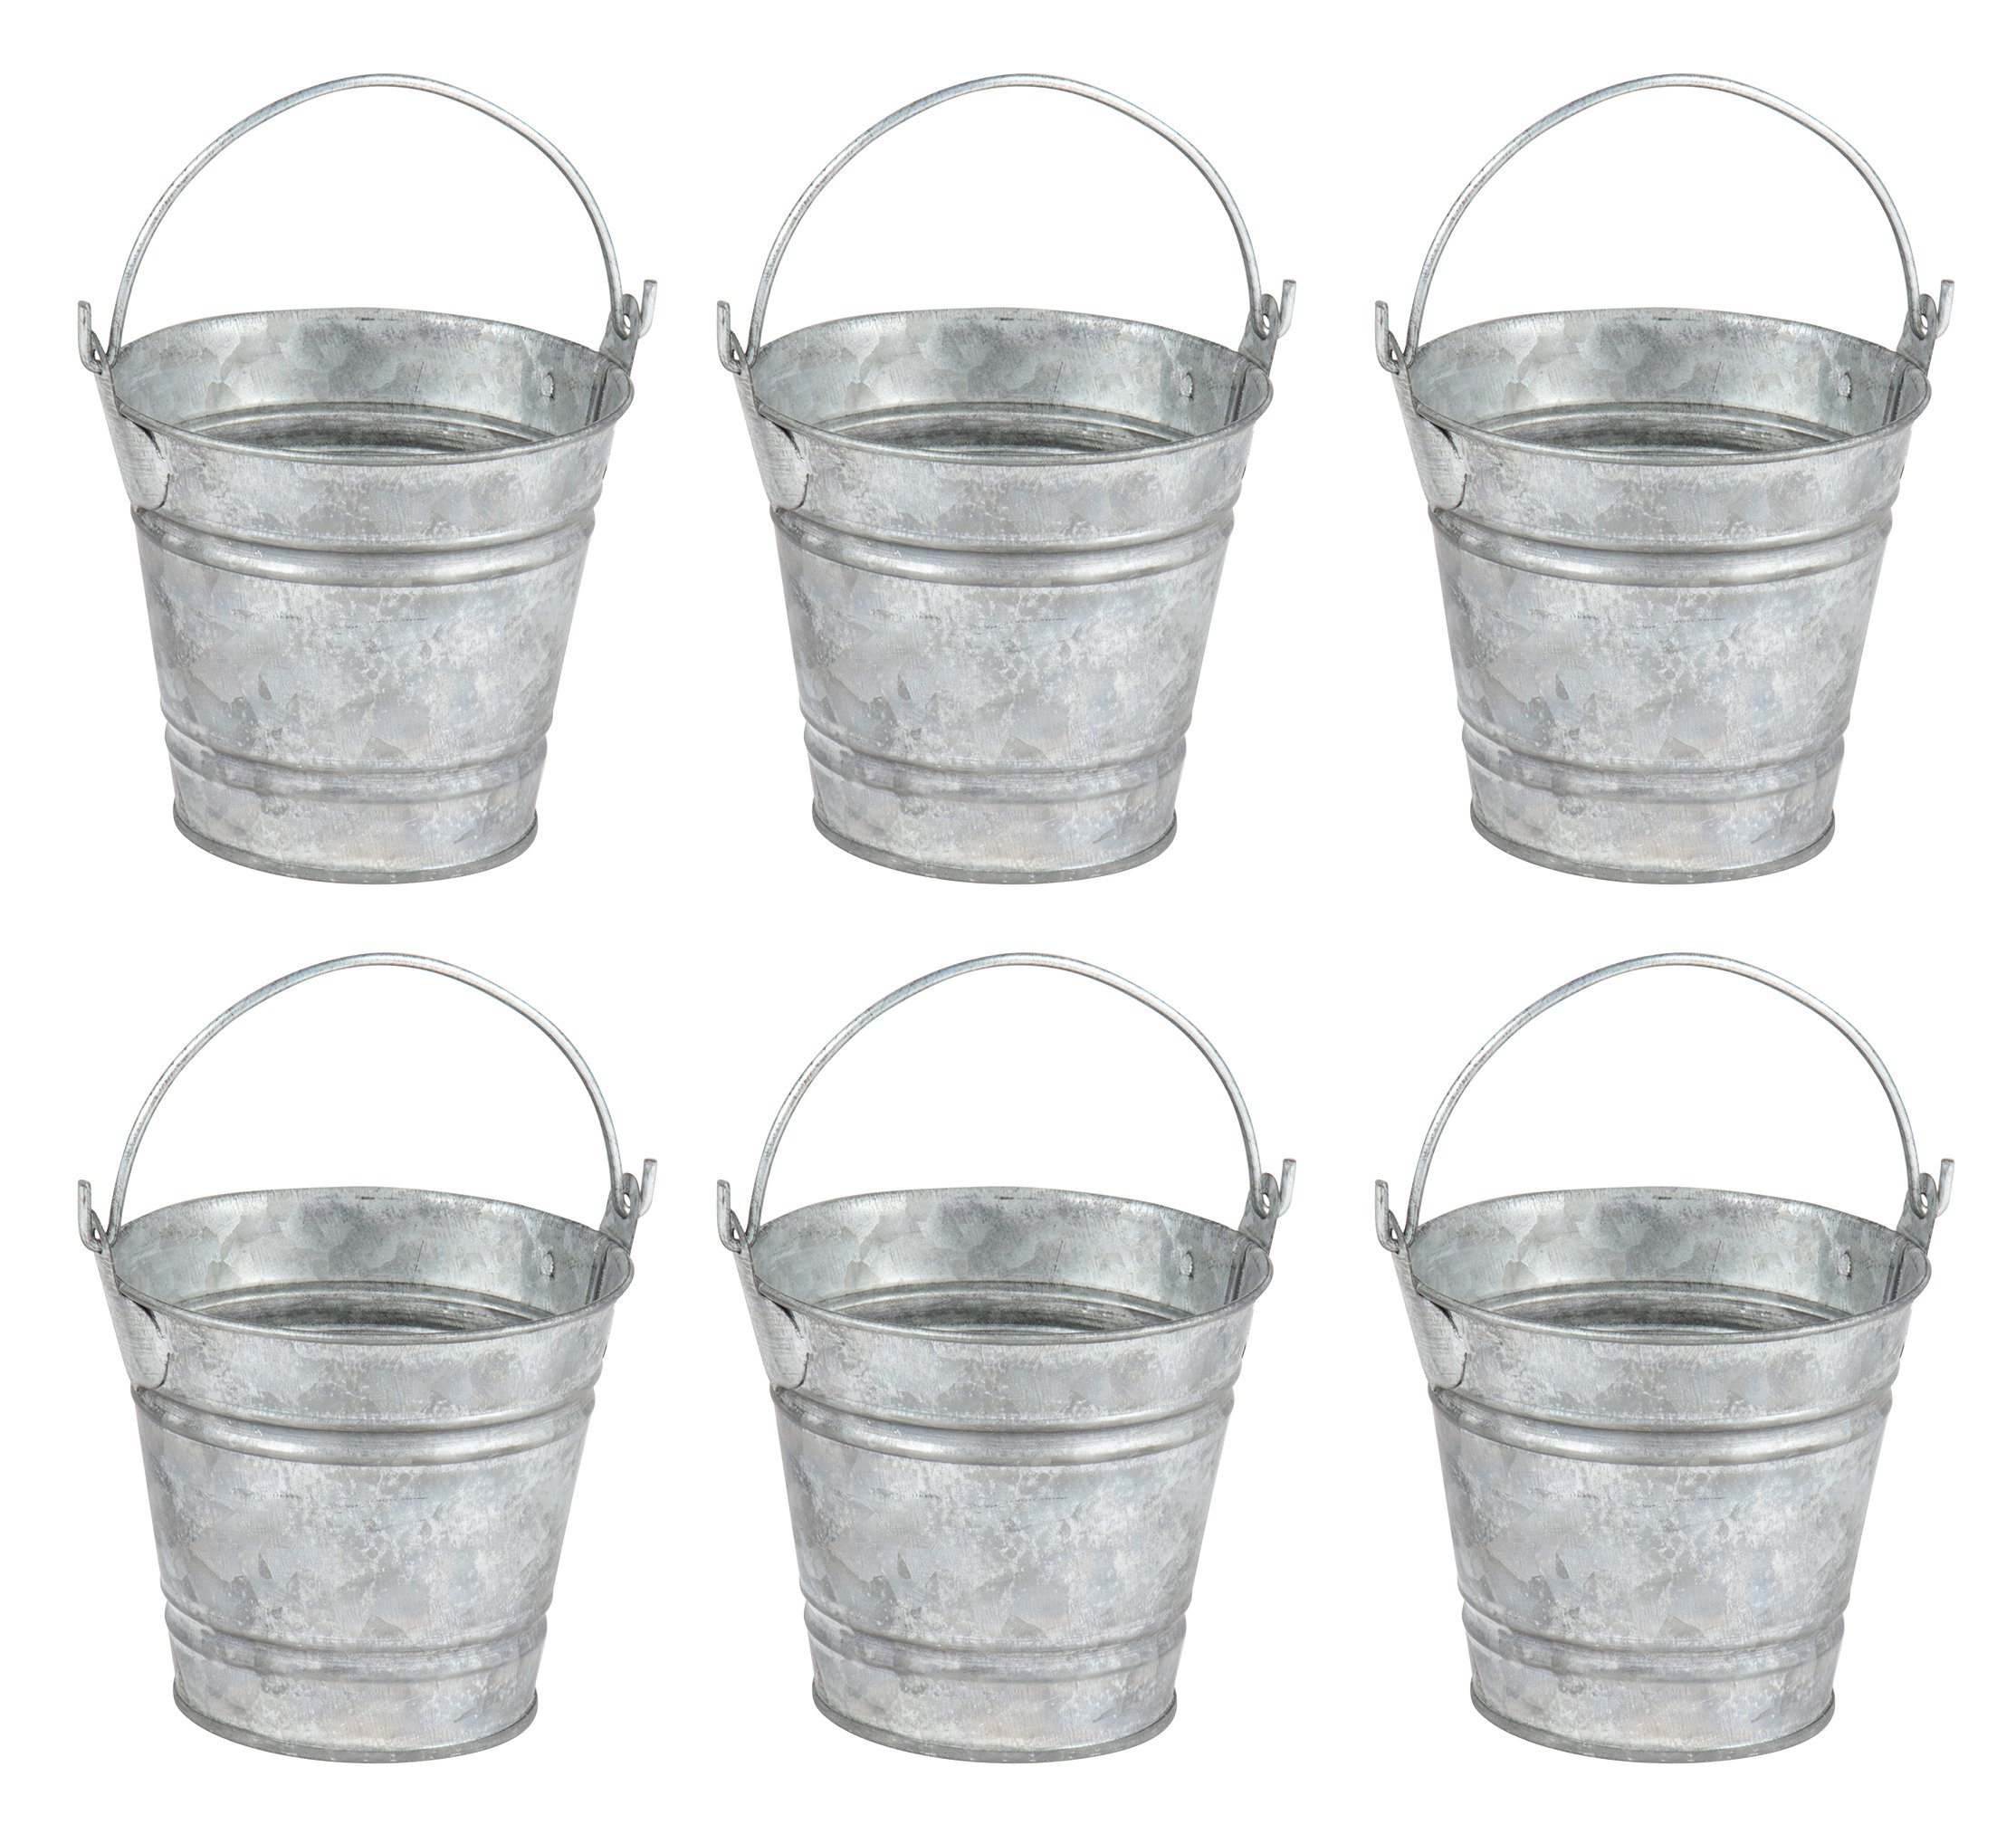 Juvale Mini Metal Buckets Handles - 6-Pack Party Tin Pail Containers Gifts, Candy, Party Favors, 2.8 inches Tall